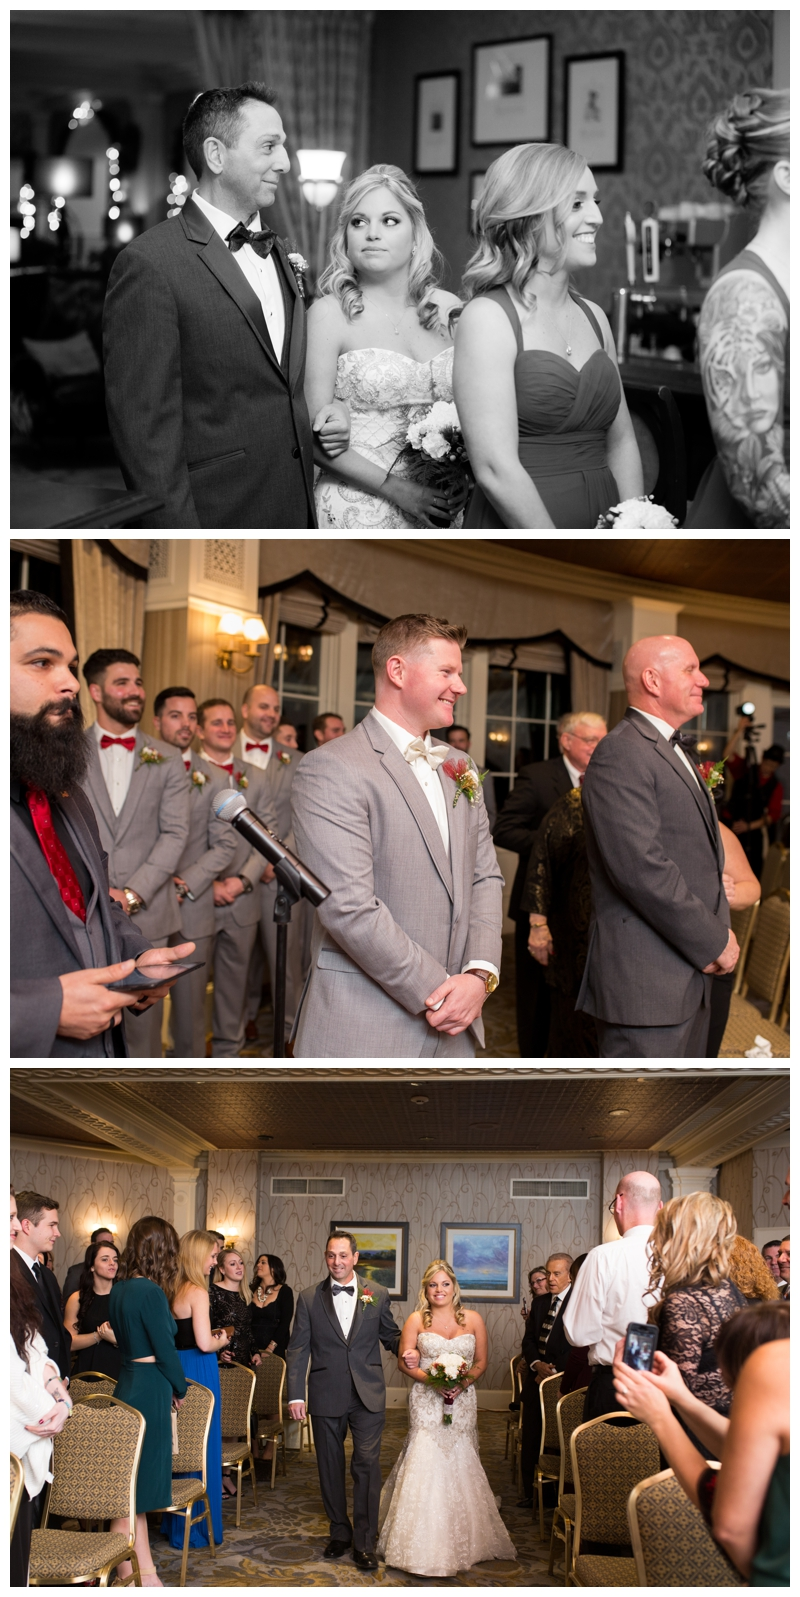 Rob and Kelsey's ceremony took place in the Oval Room at the Stockton Seaview Hotel in Galloway, NJ.